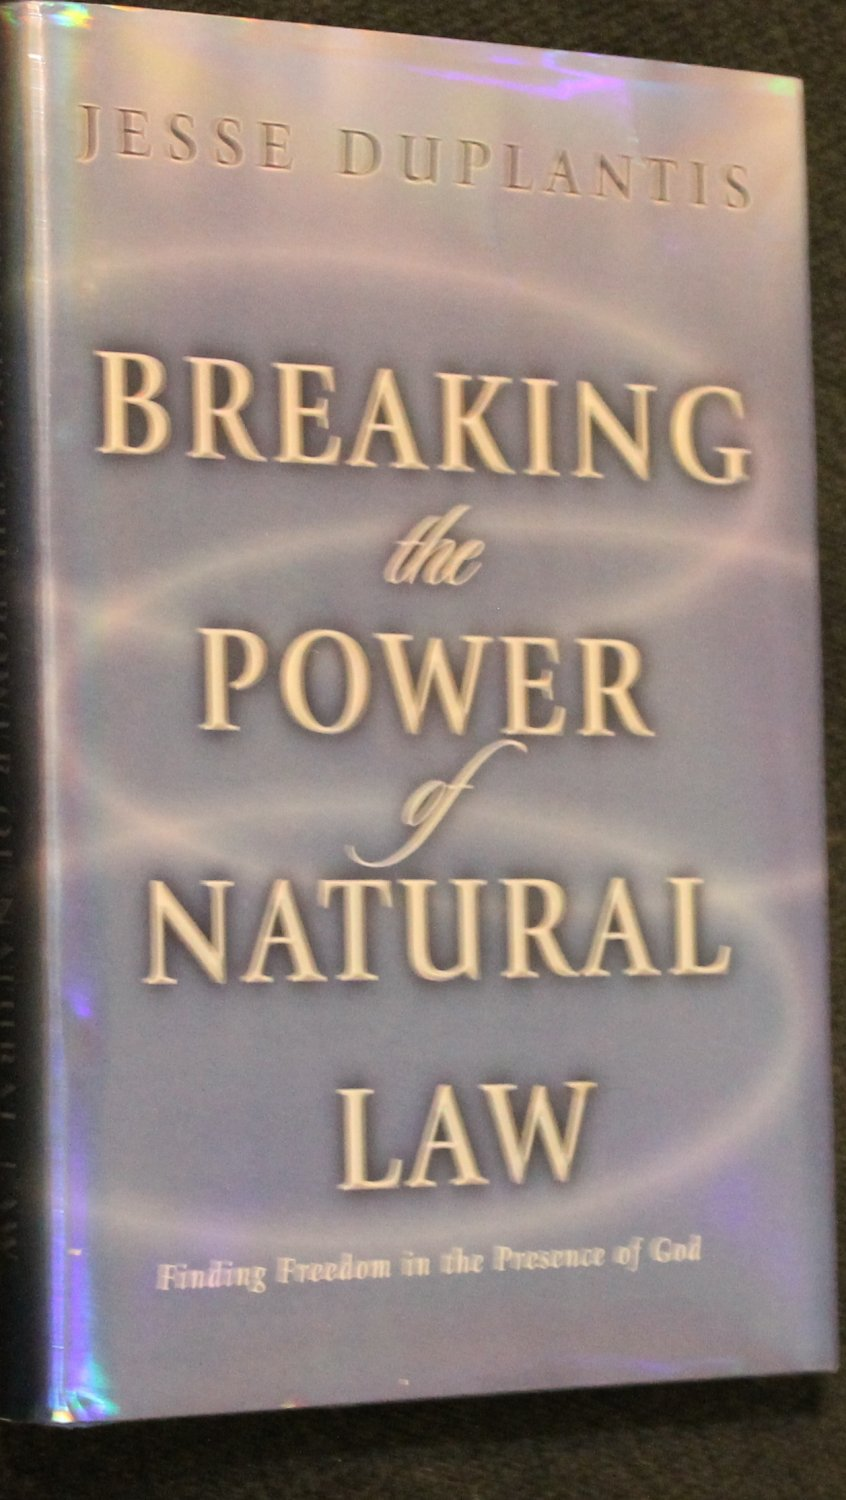 Breaking the Power of Natural Law - Finding Freedom In The Presence of God by Jesse Duplantis